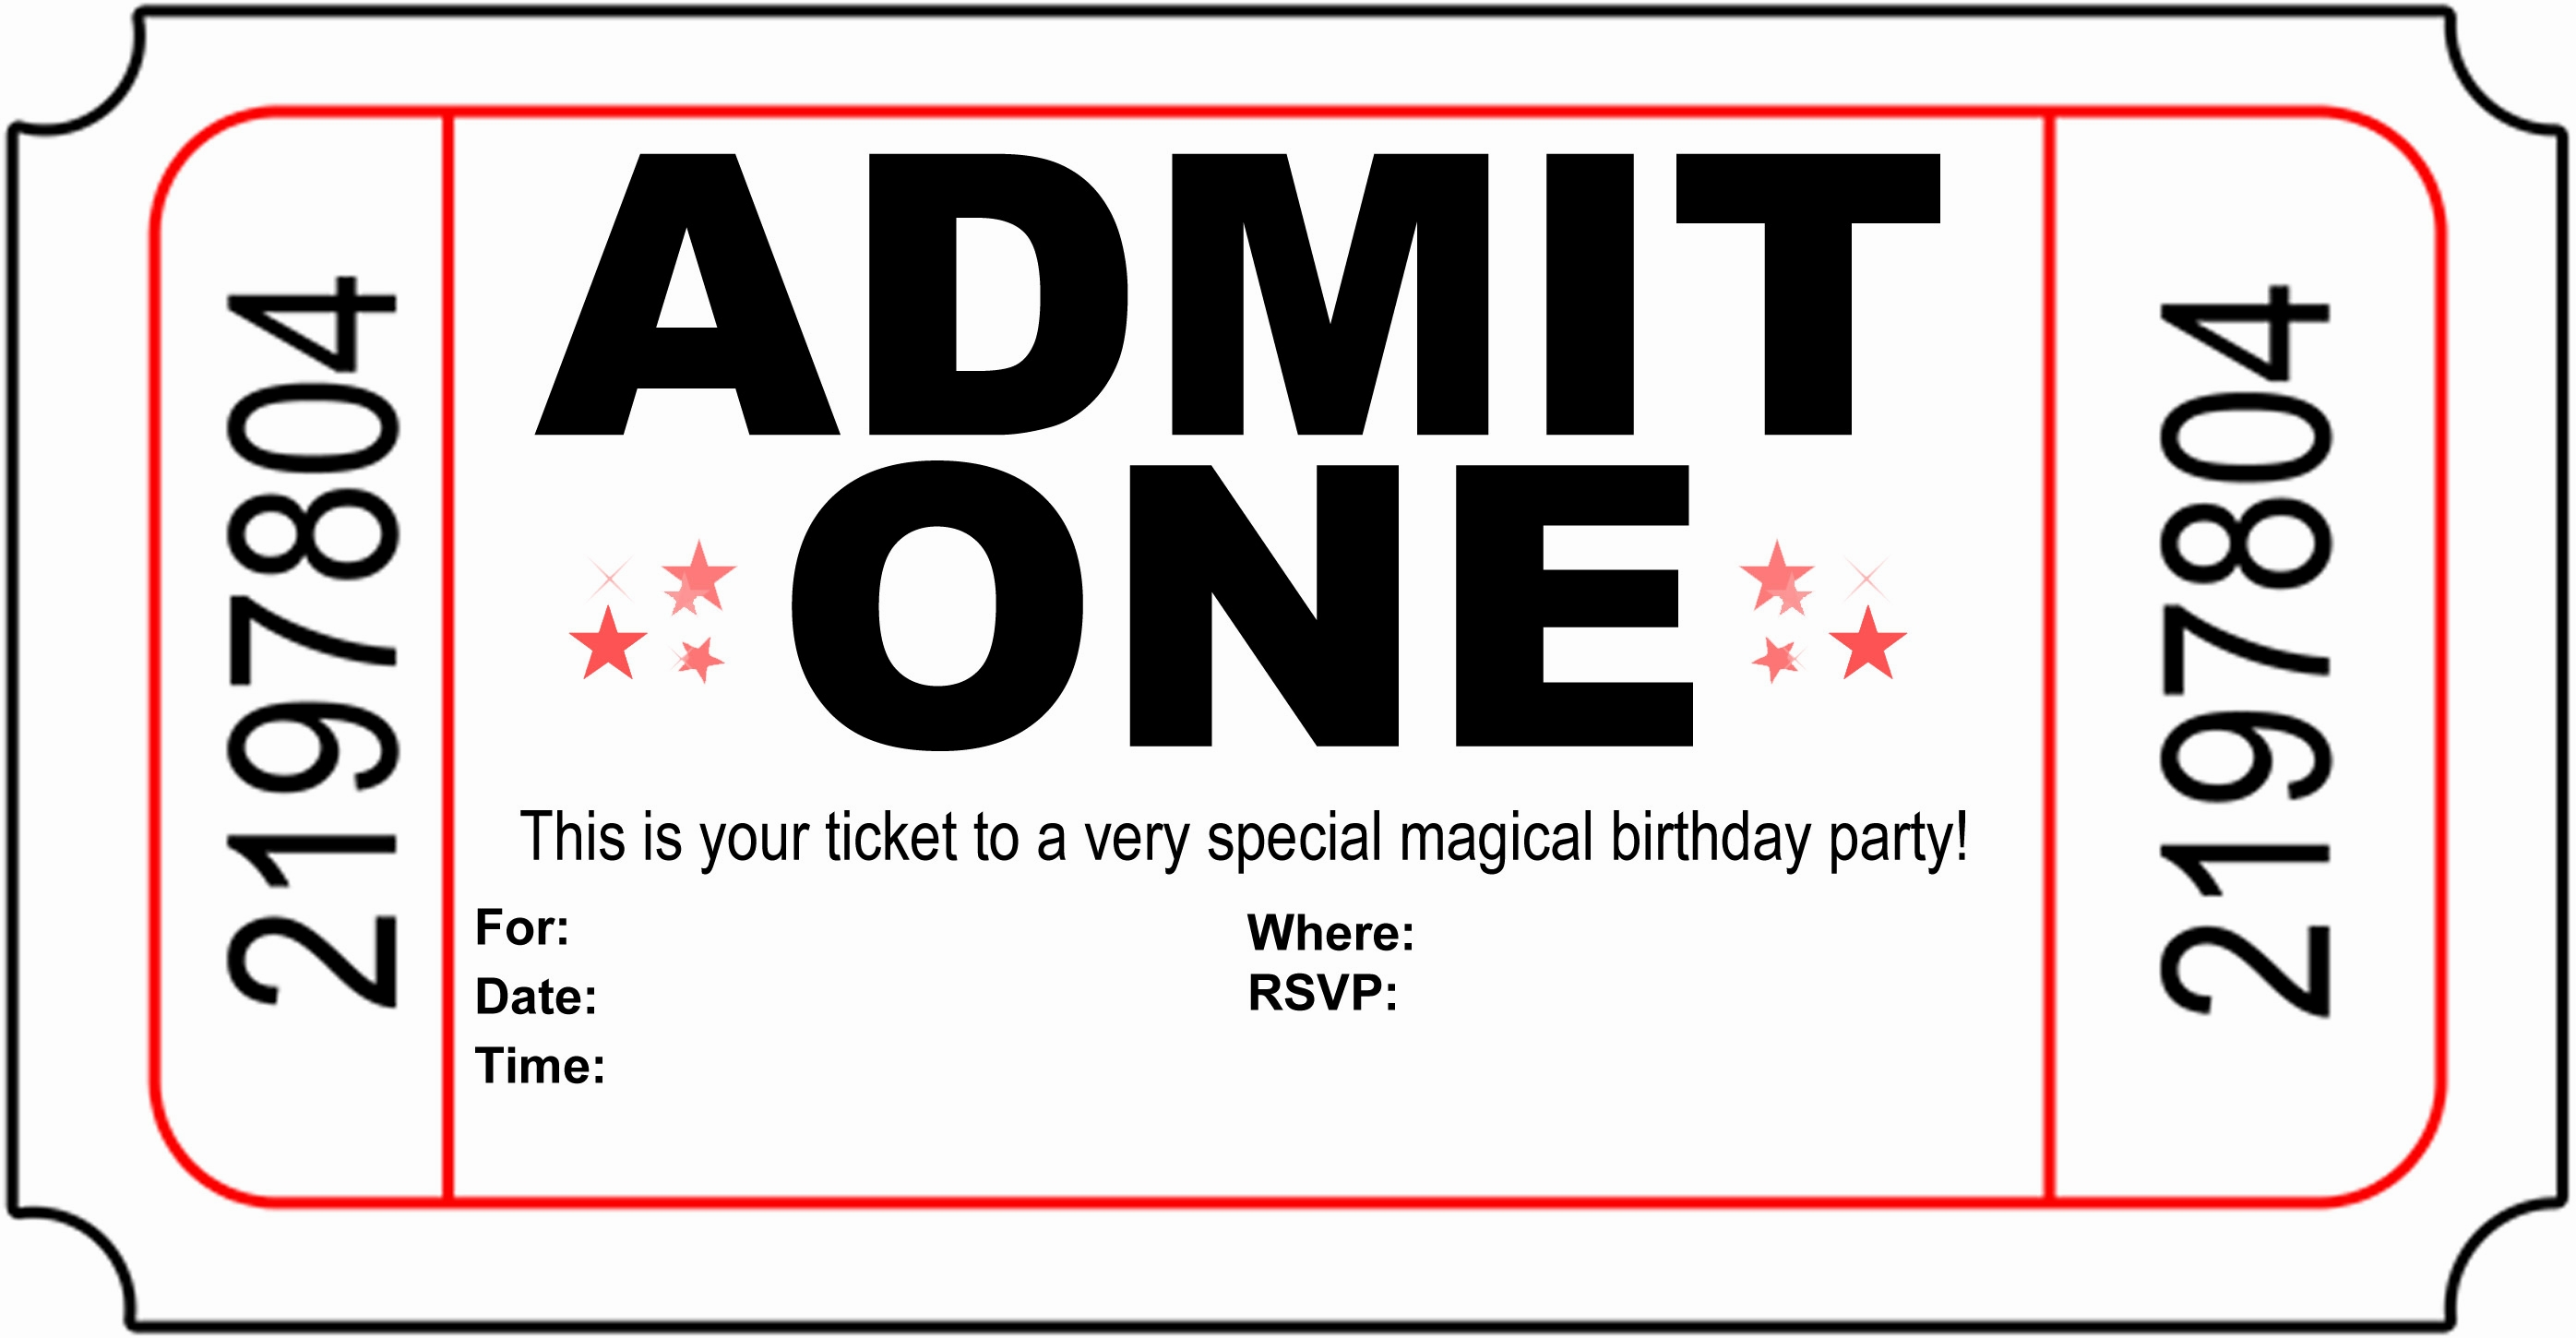 14th birthday invitation templates ; 14th-birthday-invitations-with-awesome-style-for-great-invitations-template